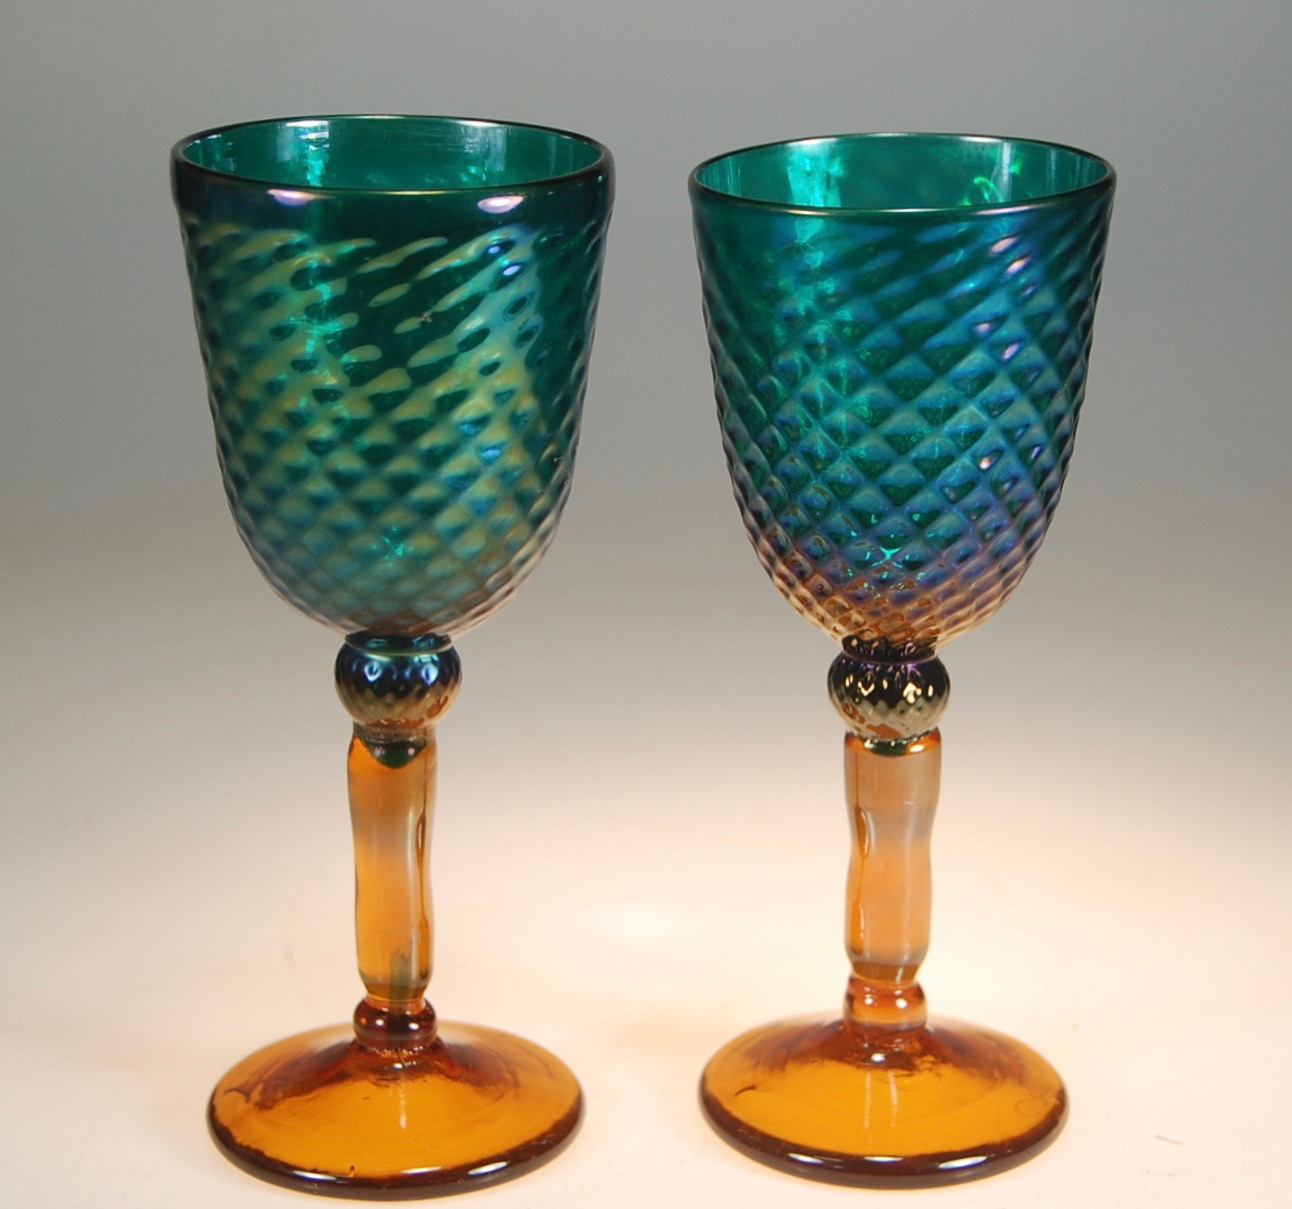 When furnaces go back on I practice on stem ware. Diamond water wine Teal/Amber